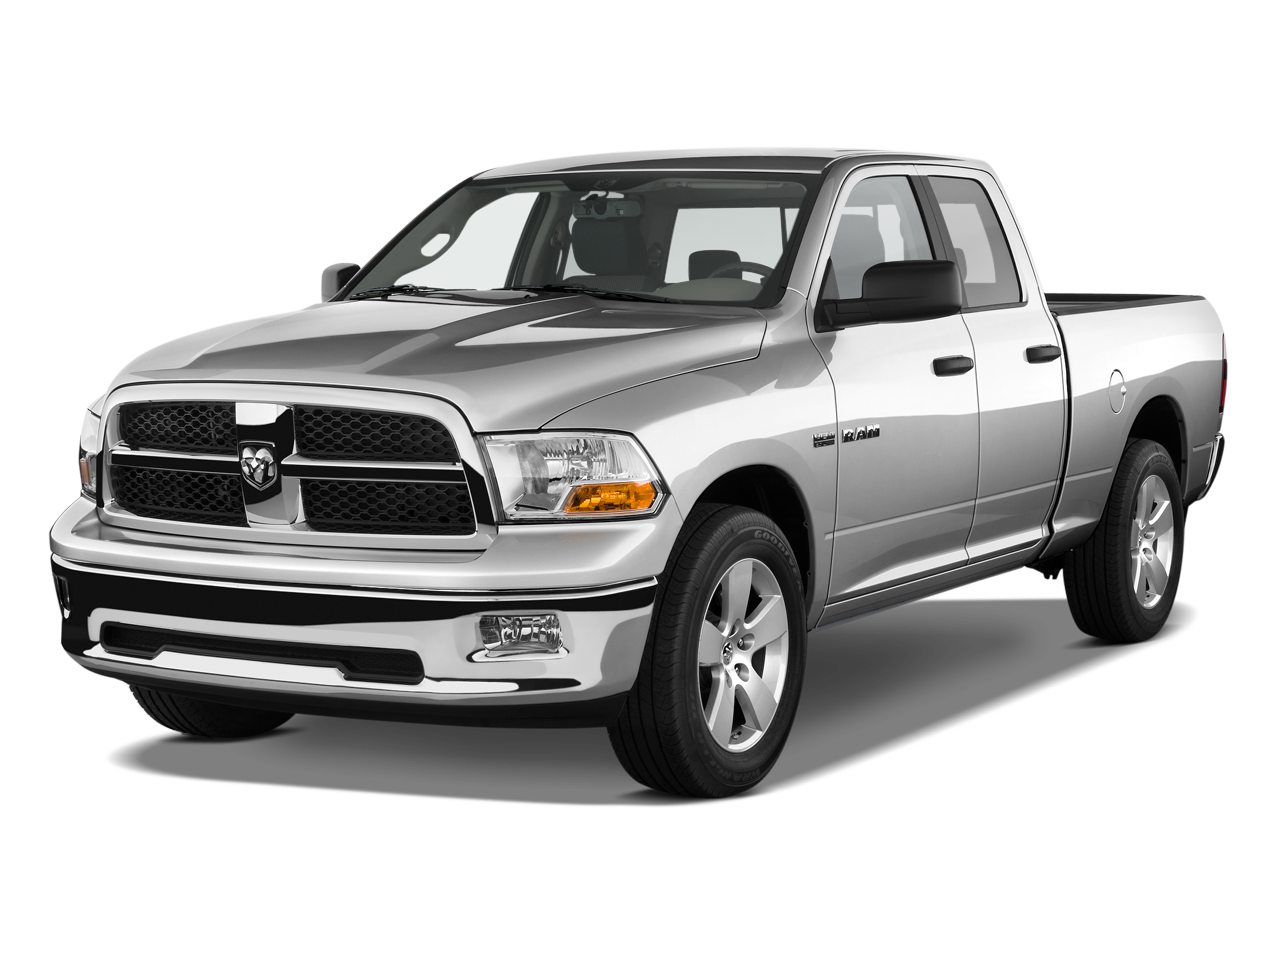 2011 Dodge Ram 1500 Cummins Diesel Killed